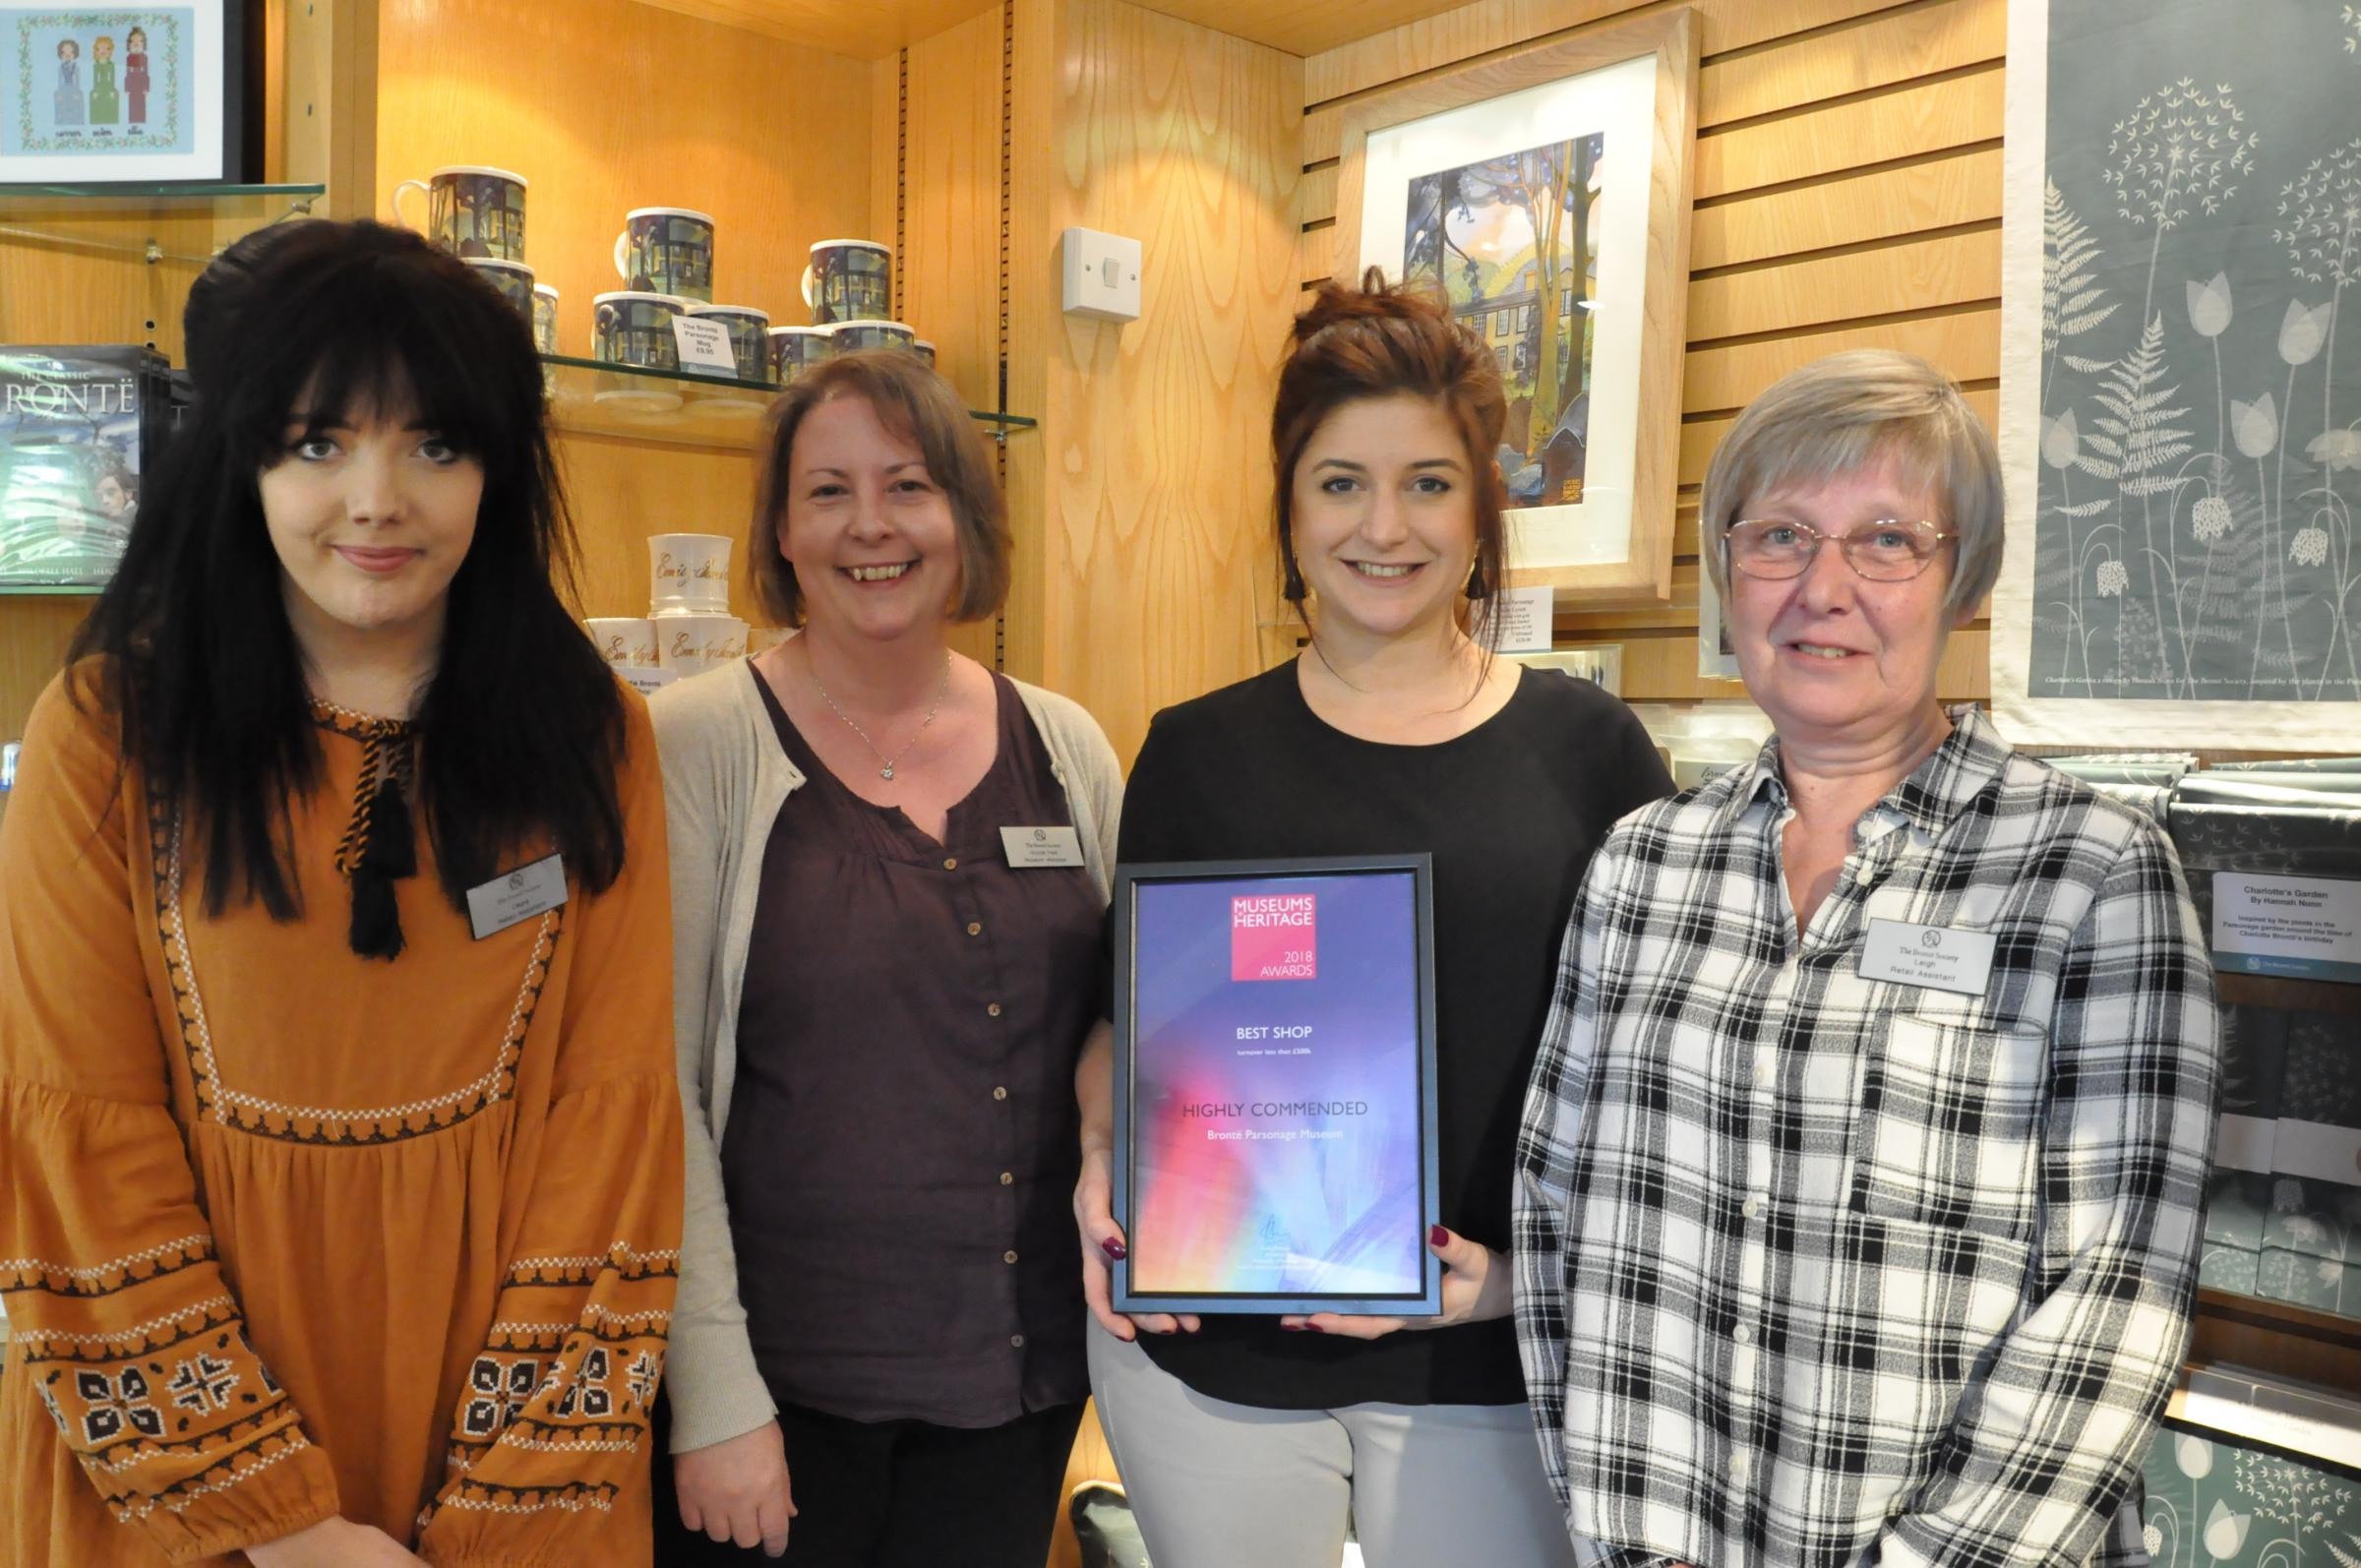 Retail manager Danielle Cadamarteri holds the Brontë Parsonage Museum's Museums + Heritage Award, with, from left, retail assistant Laura Kerry, museum manager Nicola Peel and retail assistant Leigh Perryman.